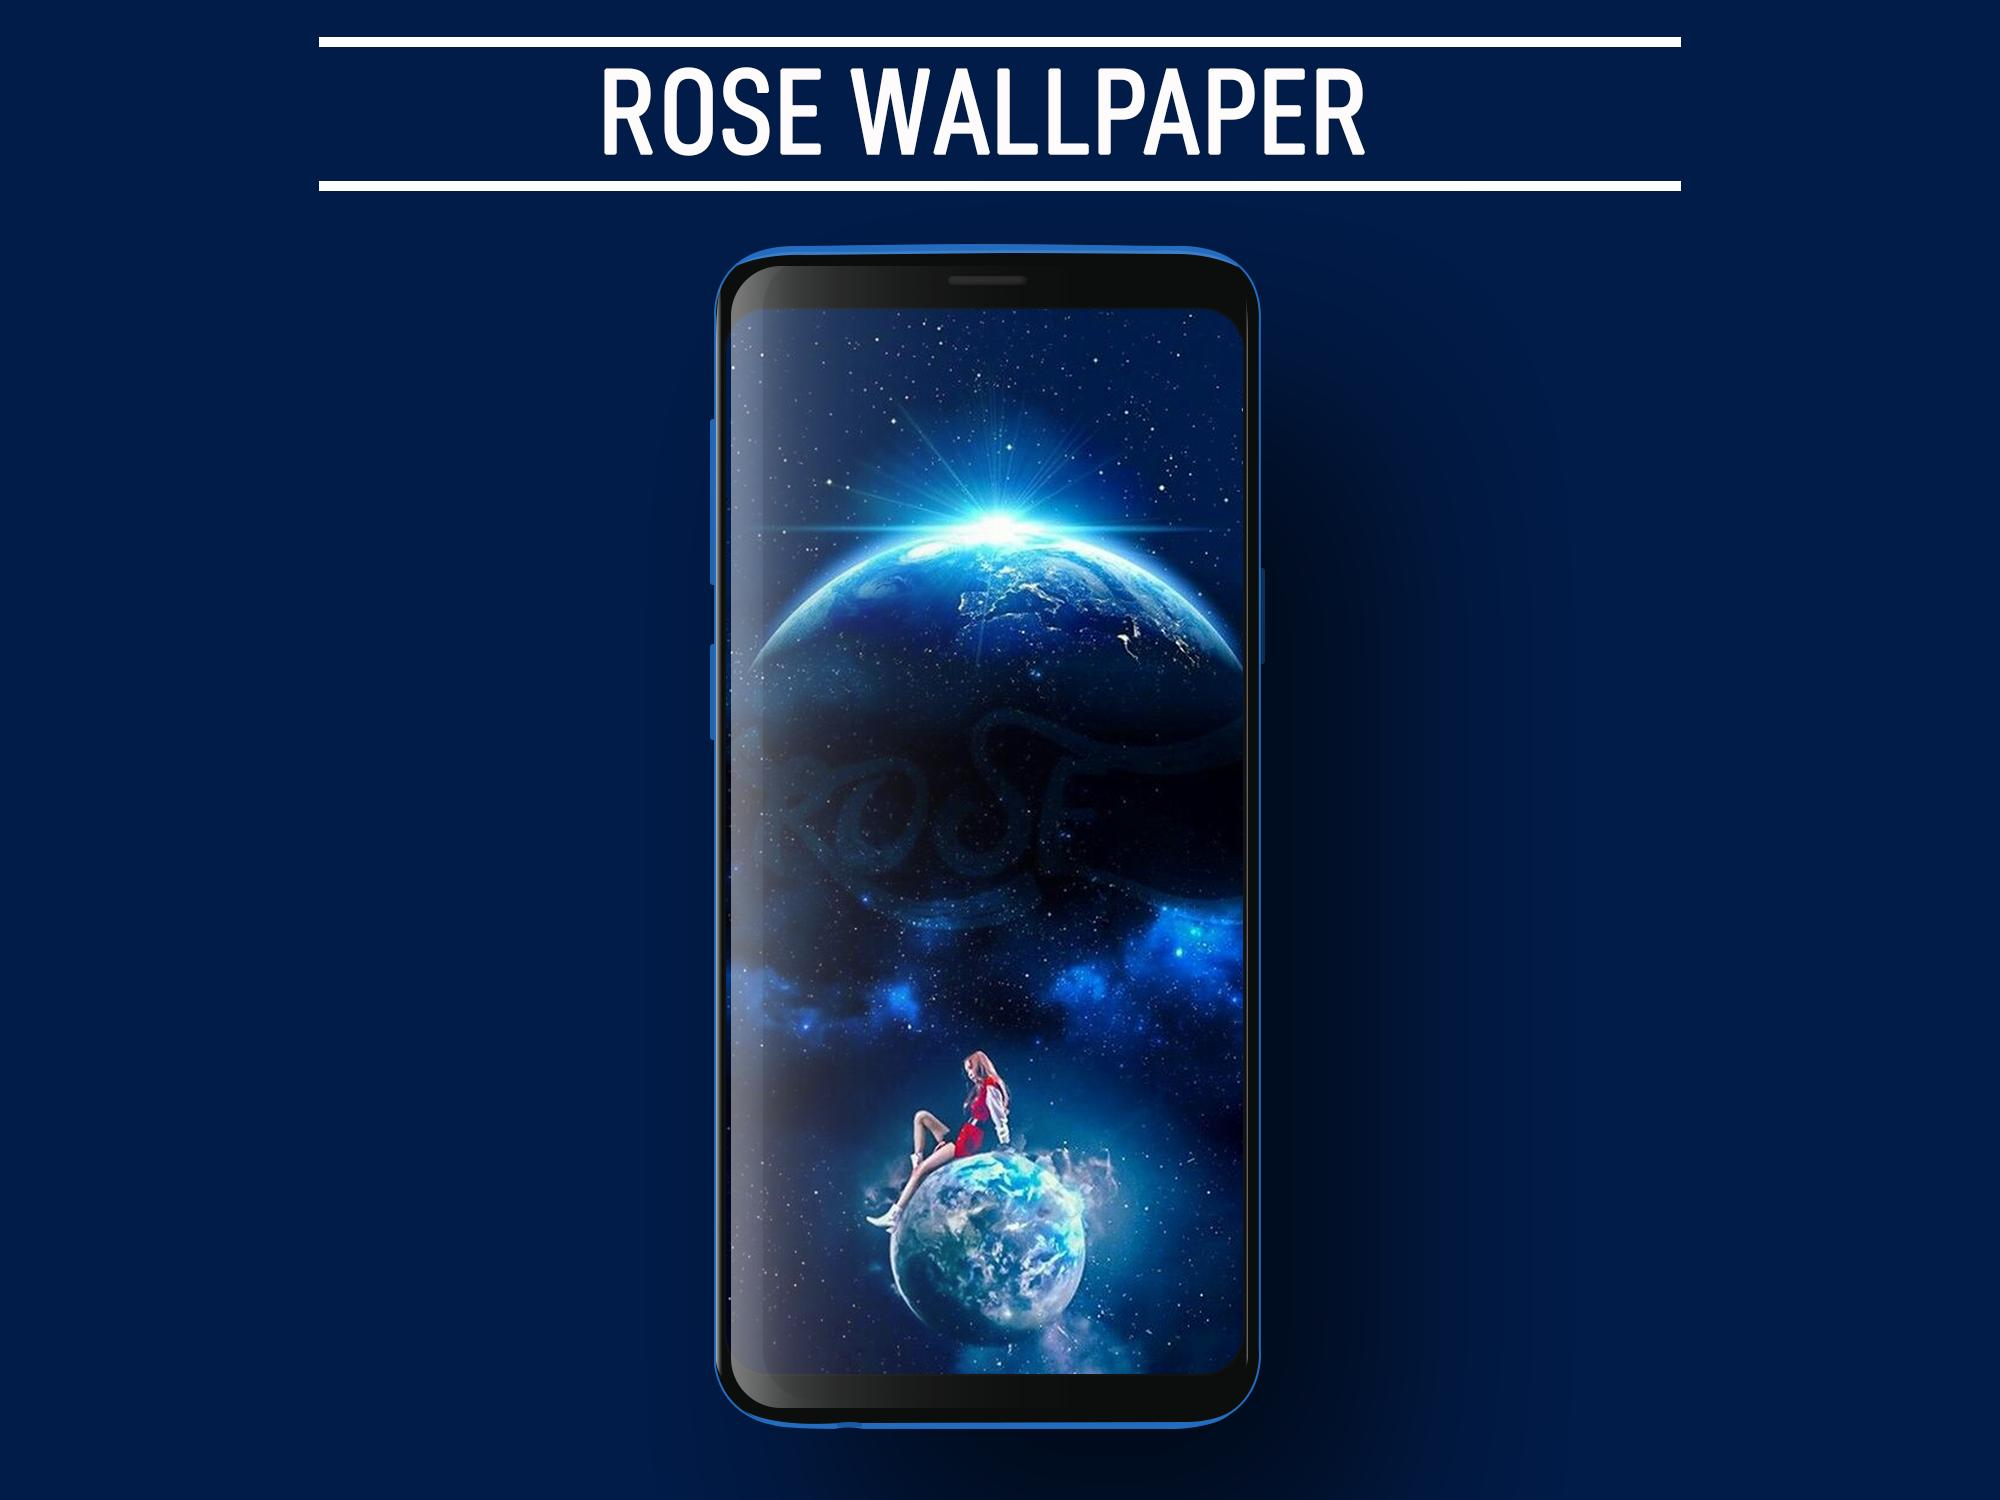 Blackpink Rose Wallpapers Kpop Fans Hd For Android Apk